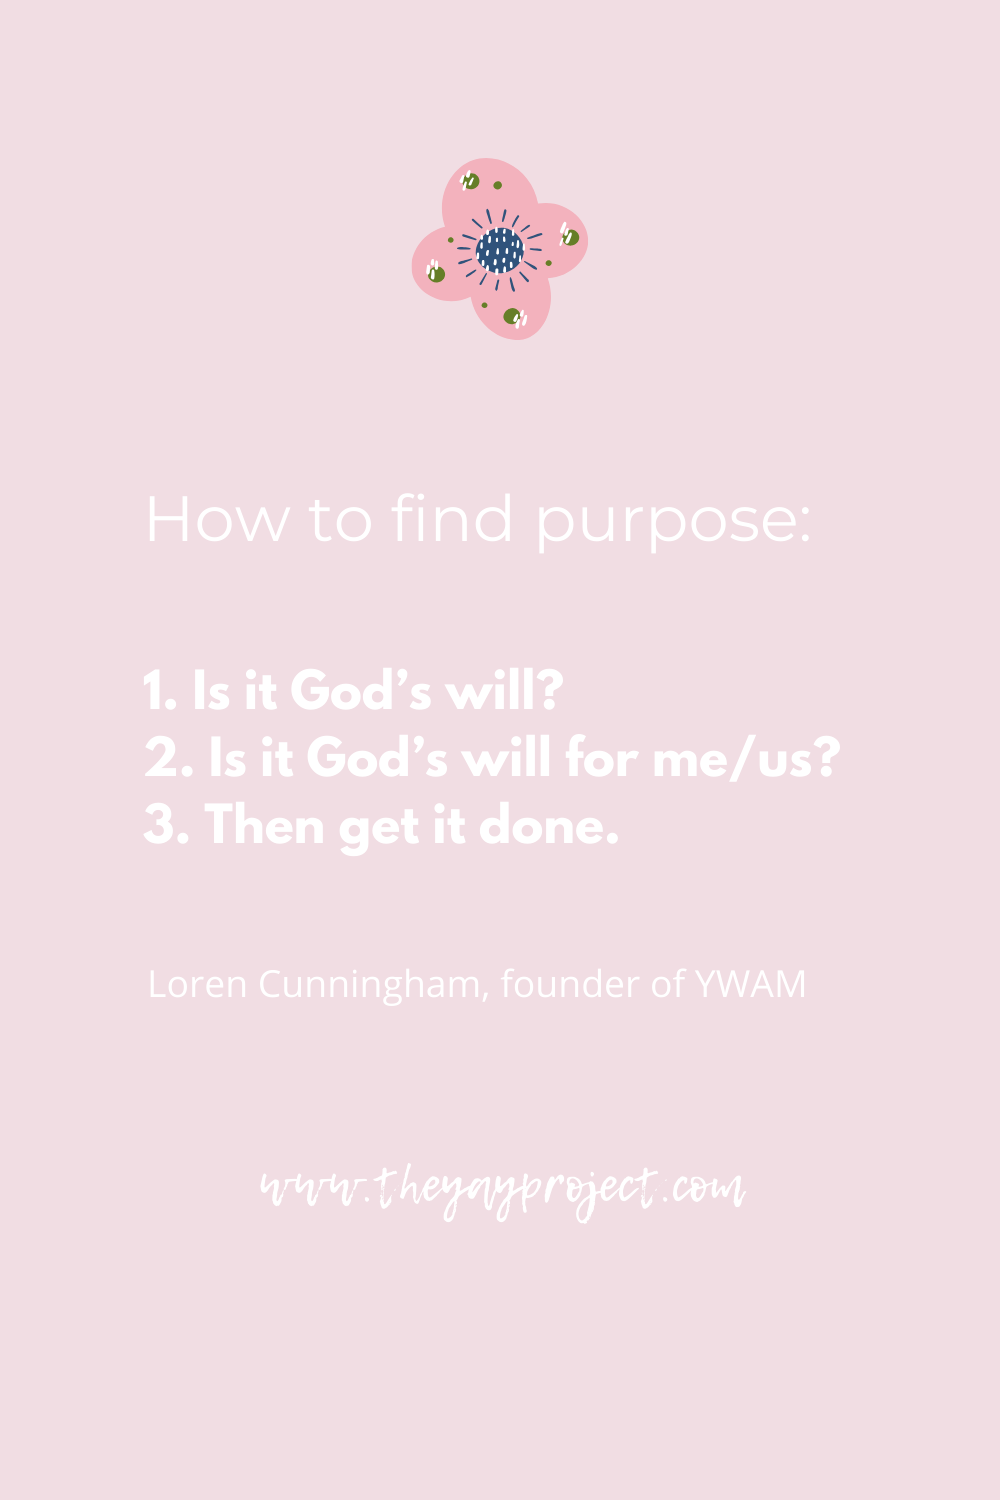 Loren Cunningham YWAM purpose blog by The Yay Project